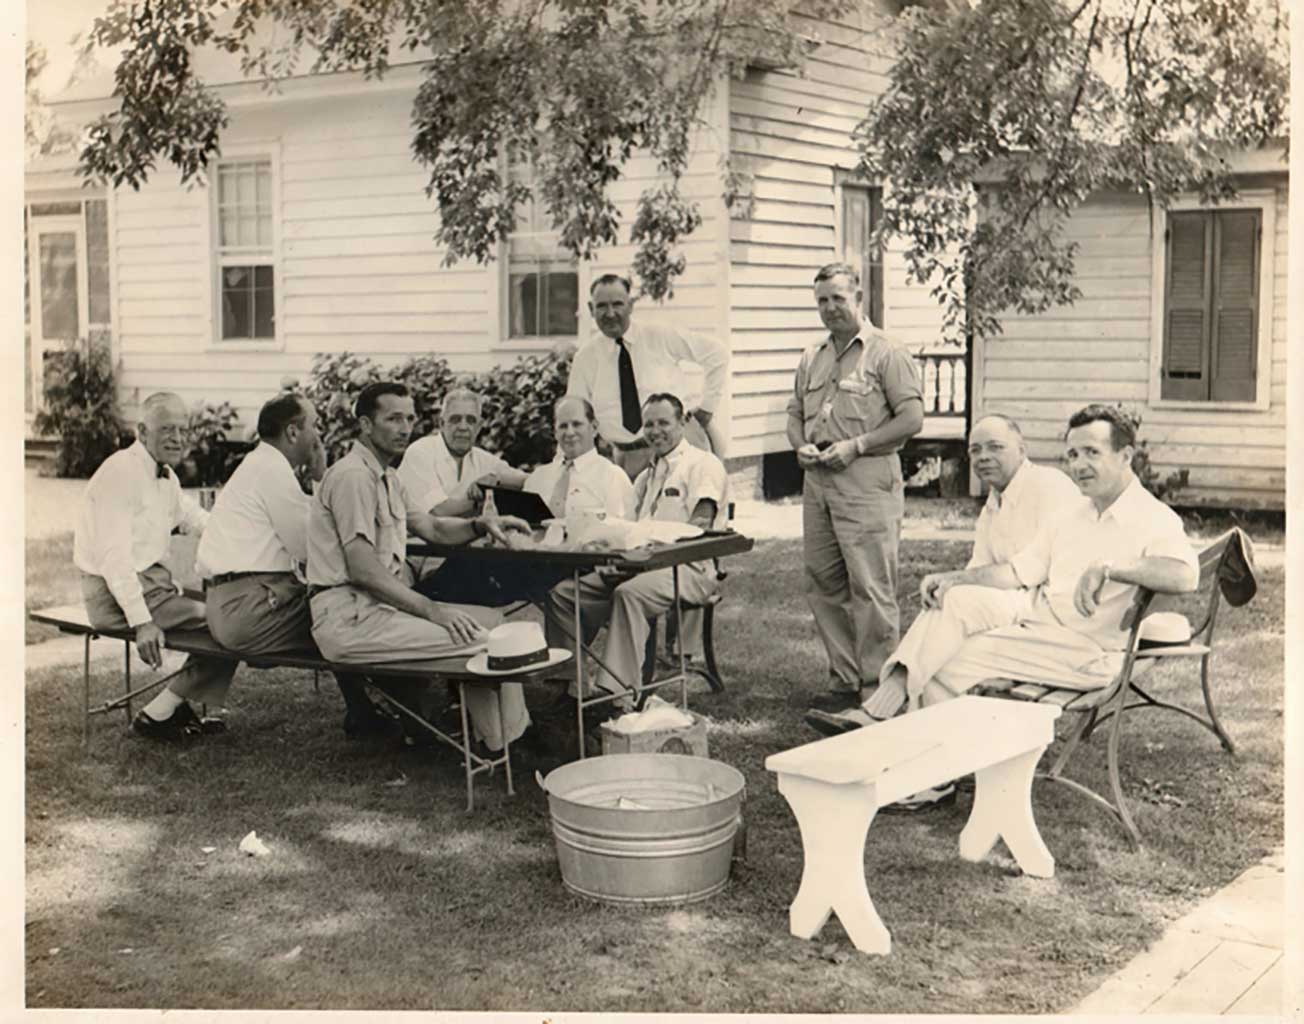 meeting-of-lone-star-hq-personnel-in-harveys-backyard-in-chuckatuck-1954-img828